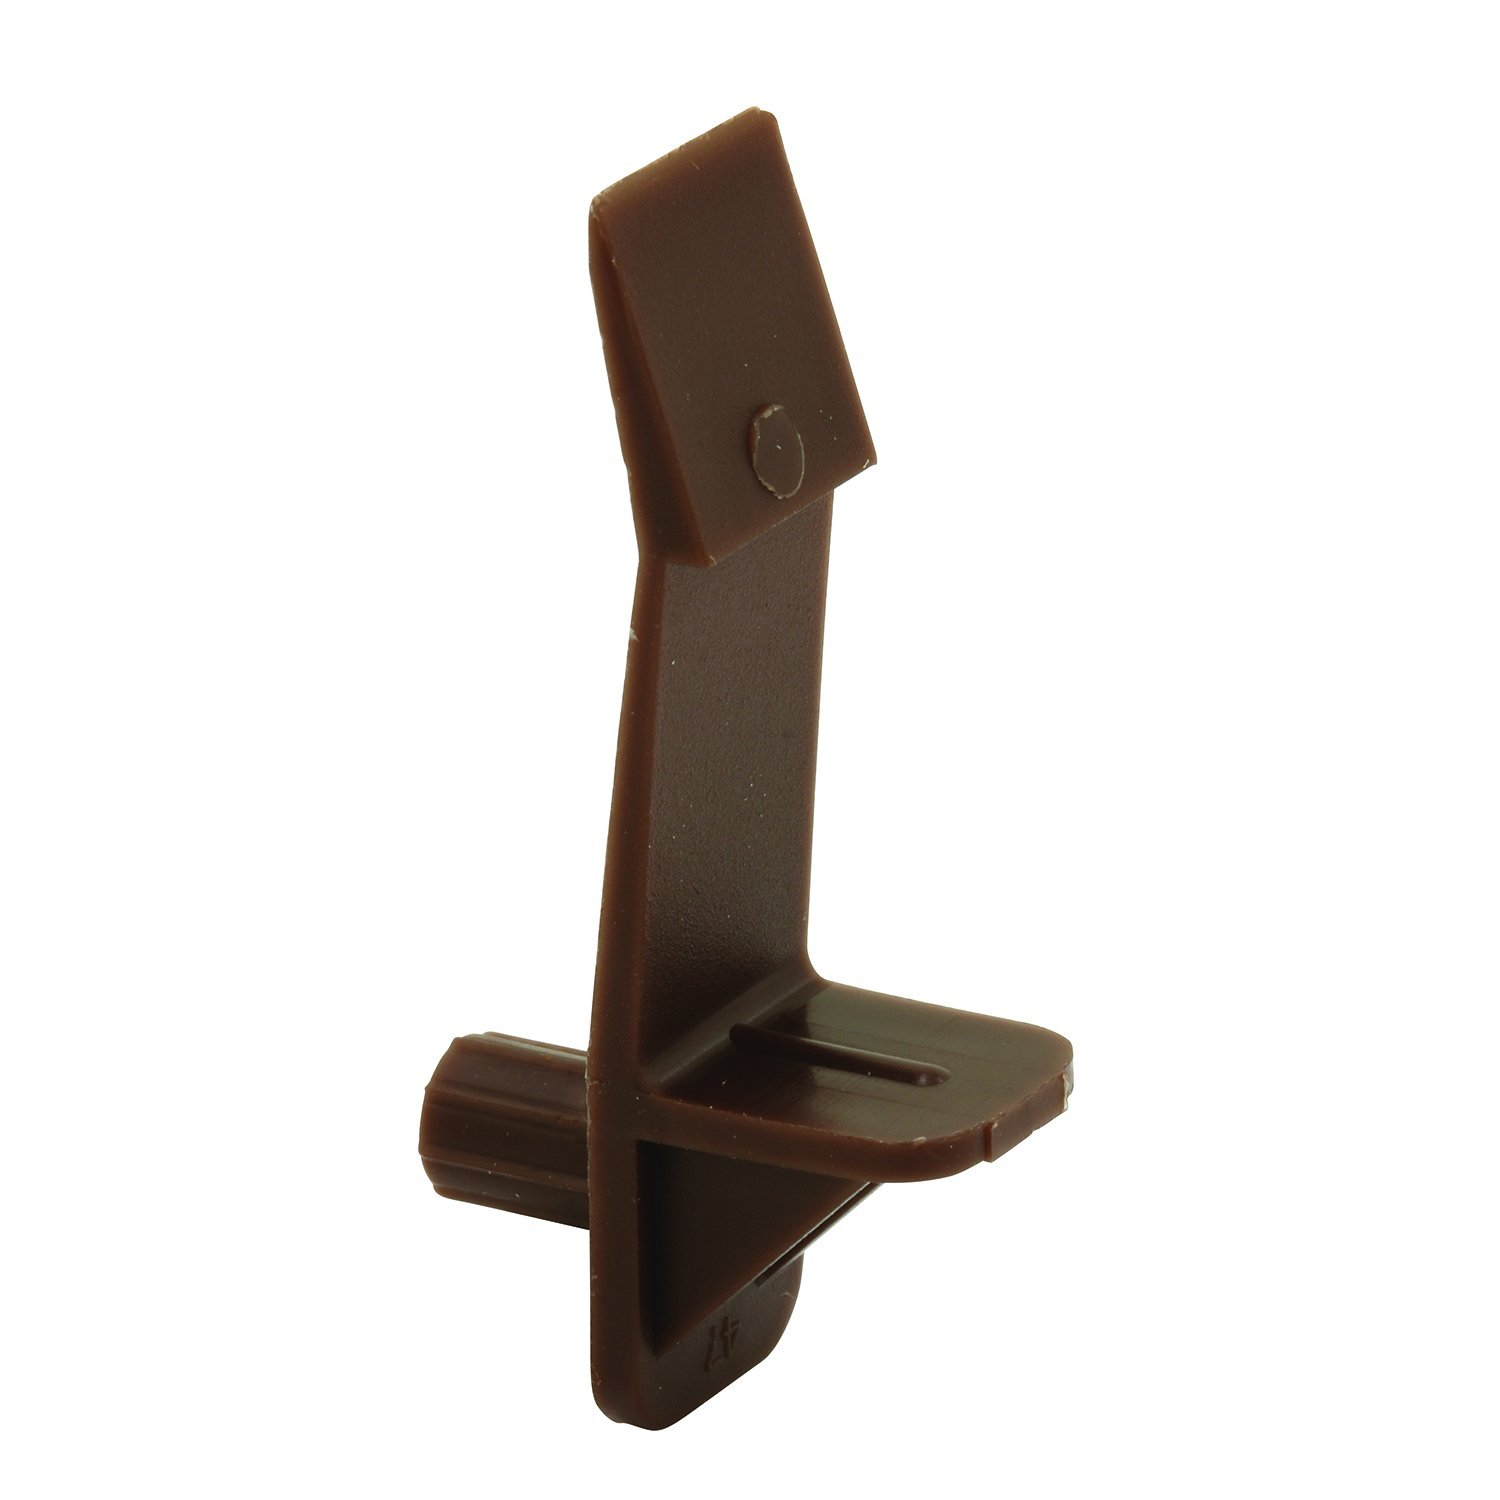 Prime-Line MP9117-100 Self-Locking Support Peg with 3/4-Inch Shelf, 1/4-Inch, Brown, Pack of 100, 100 Piece